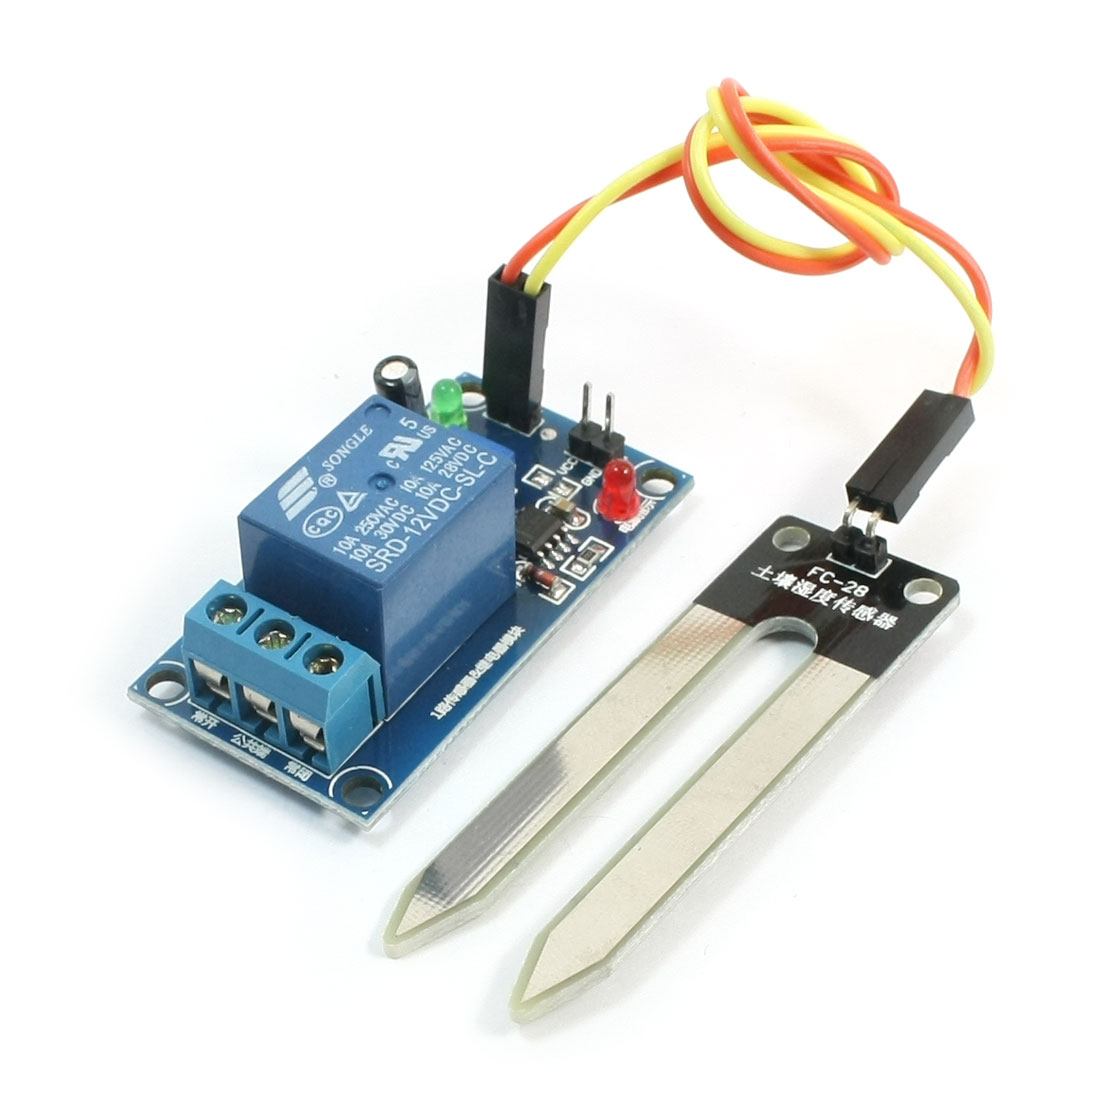 Auto Irrigation LM393 Chip Soil Moisture Humidity Sensor Module 12V